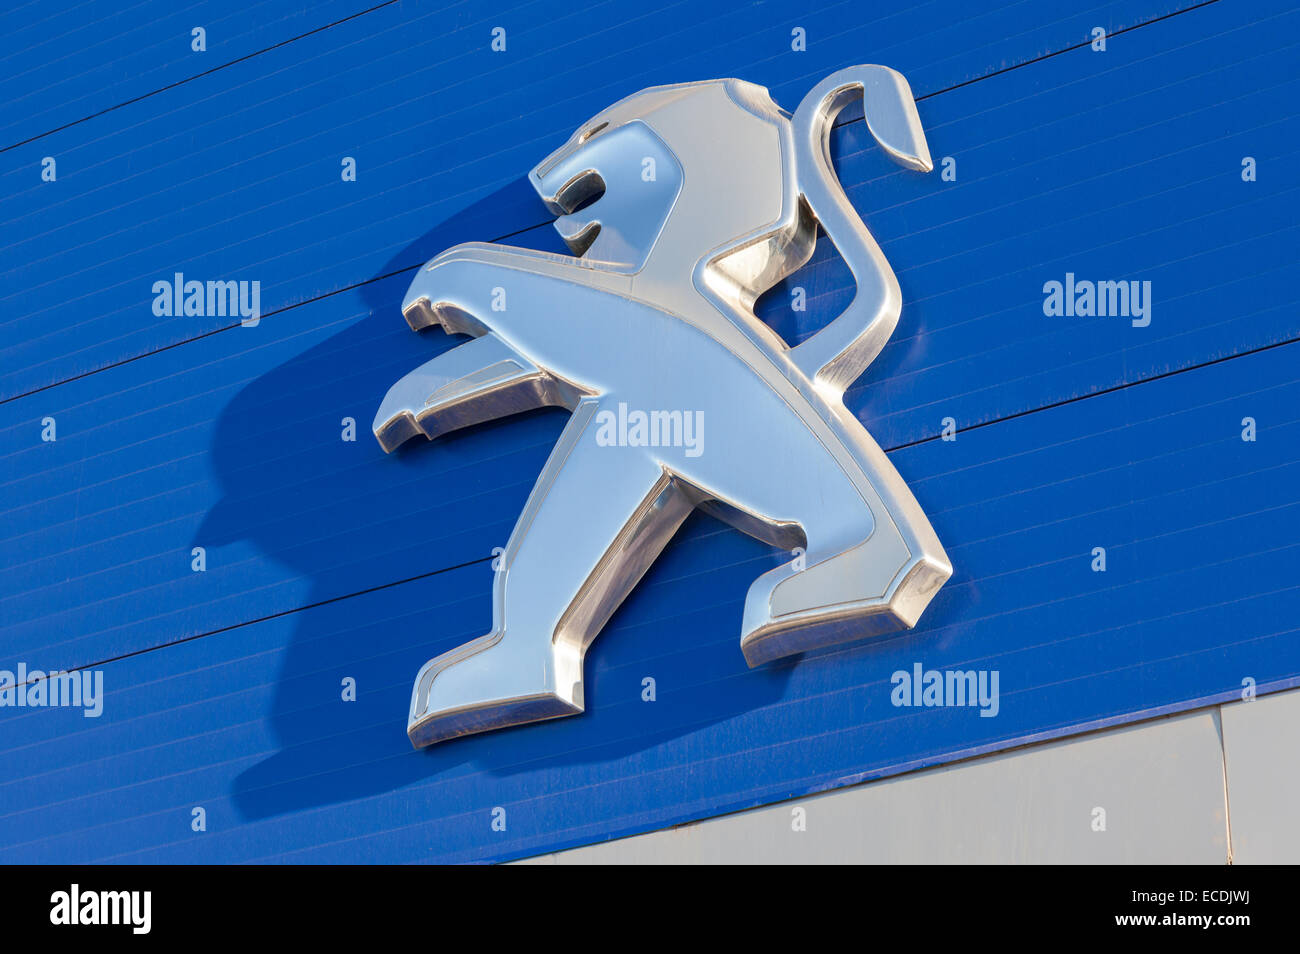 Garage Peugeot Montreuil Peugeot Building Stock Photos Peugeot Building Stock Images Alamy